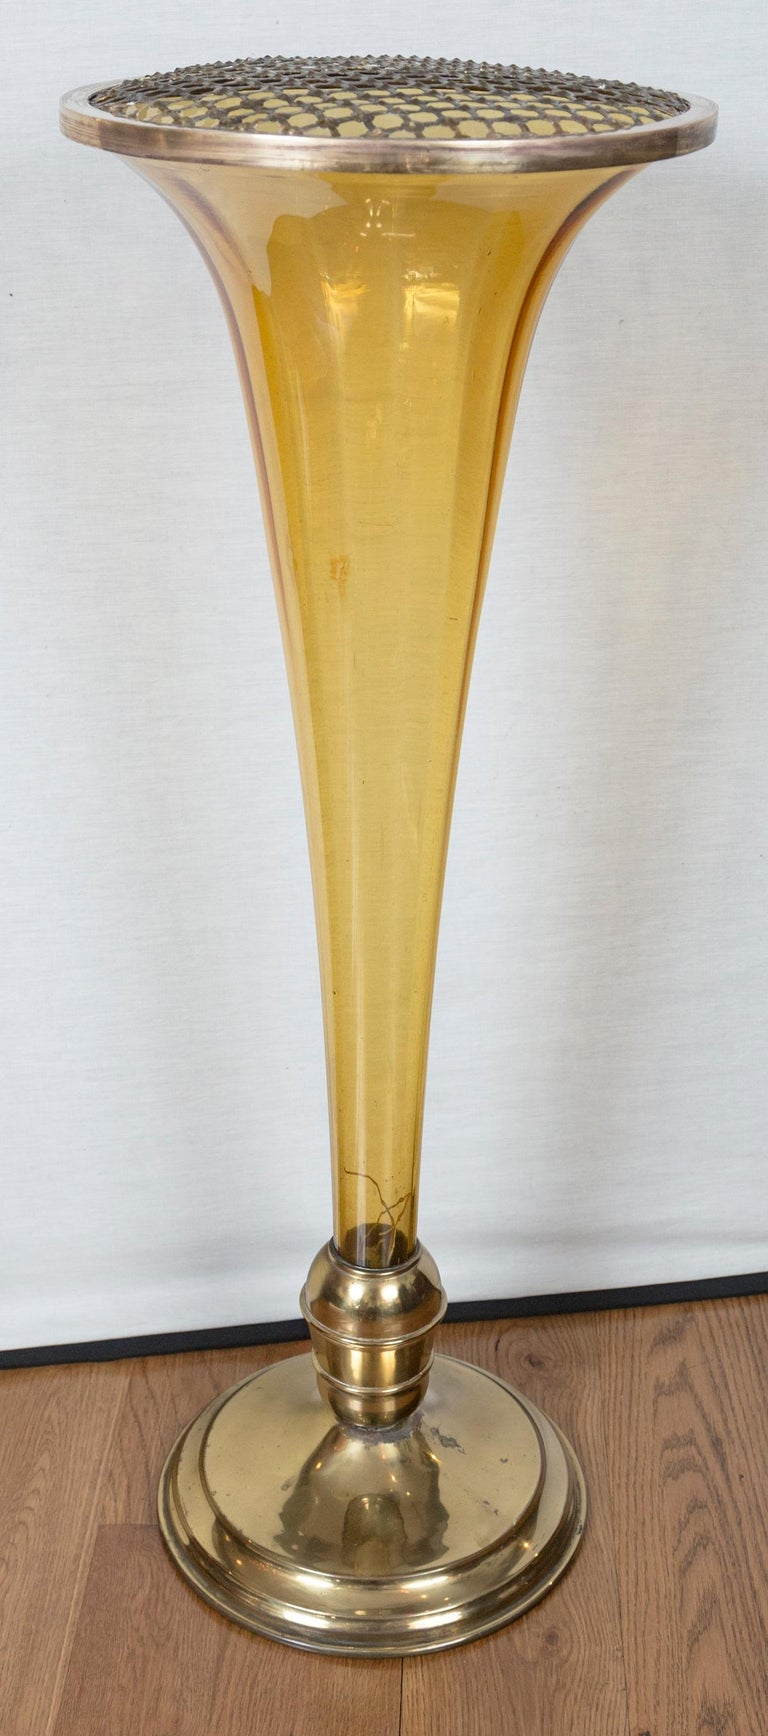 Large and dramatic Murano amber glass trumpet- shaped vase with brass base and removable brass frog cap.